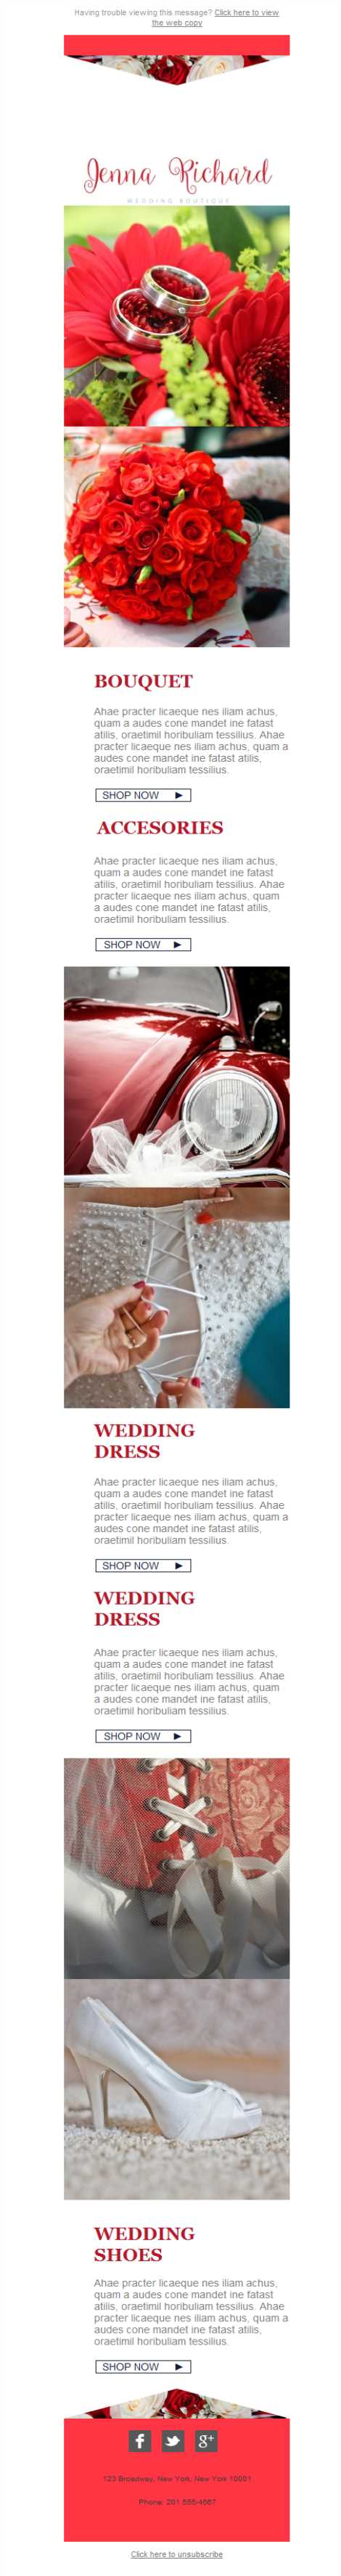 Templates Emailing Wedding Boutique Sarbacane